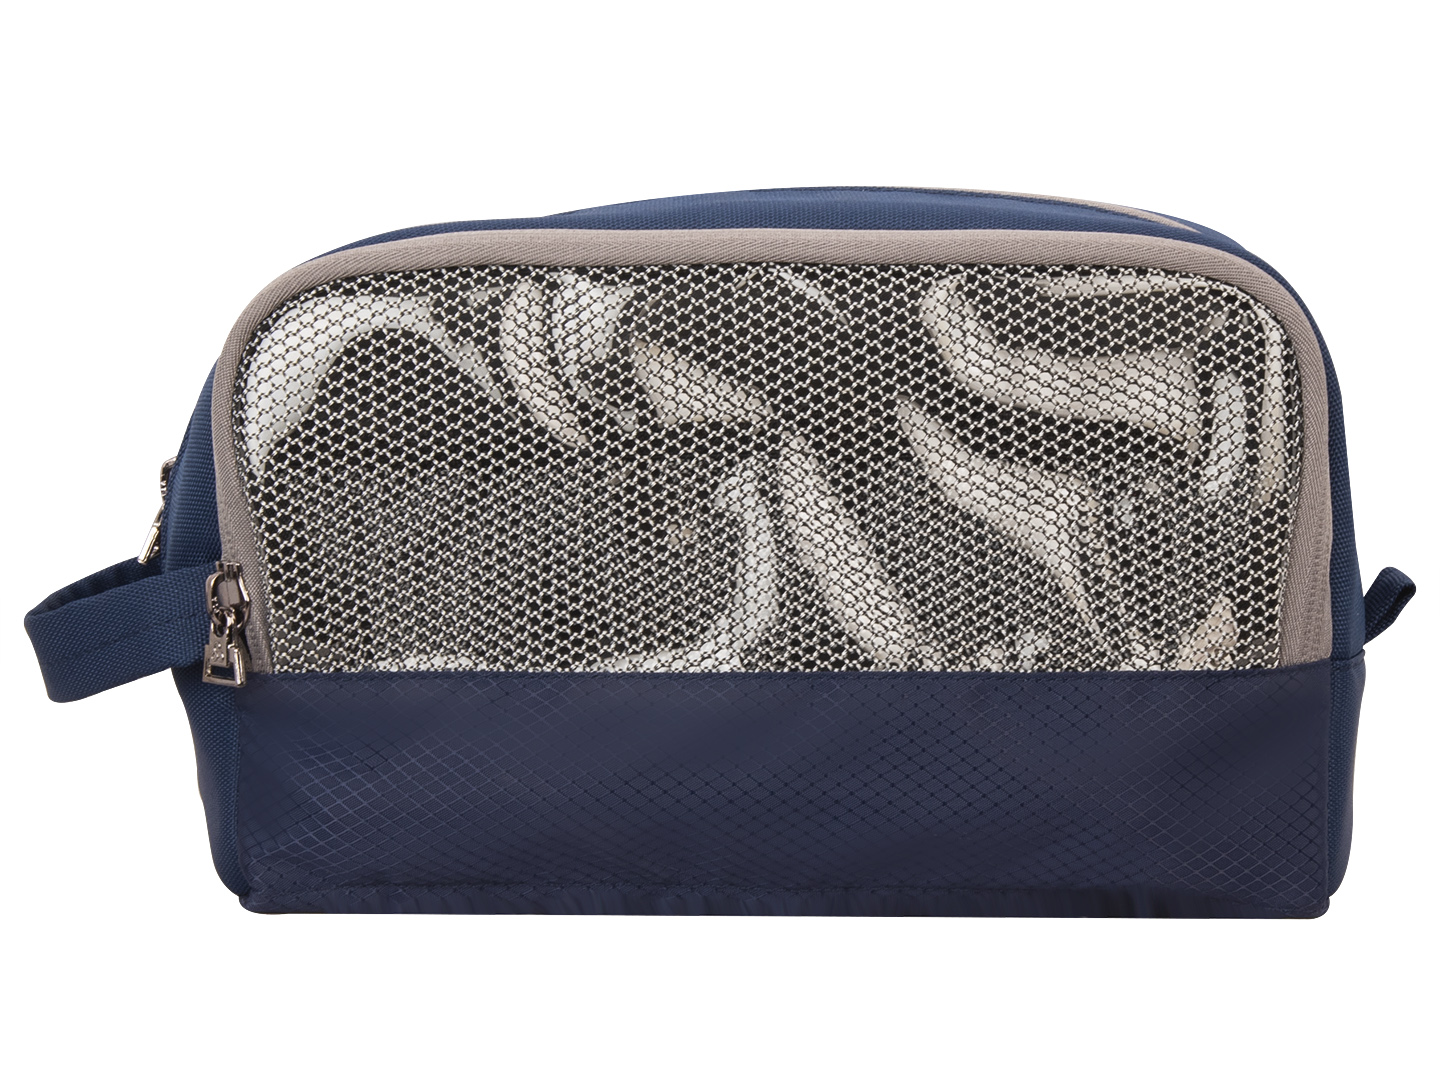 Carryon travel Navy Blue toiletry pouch bag